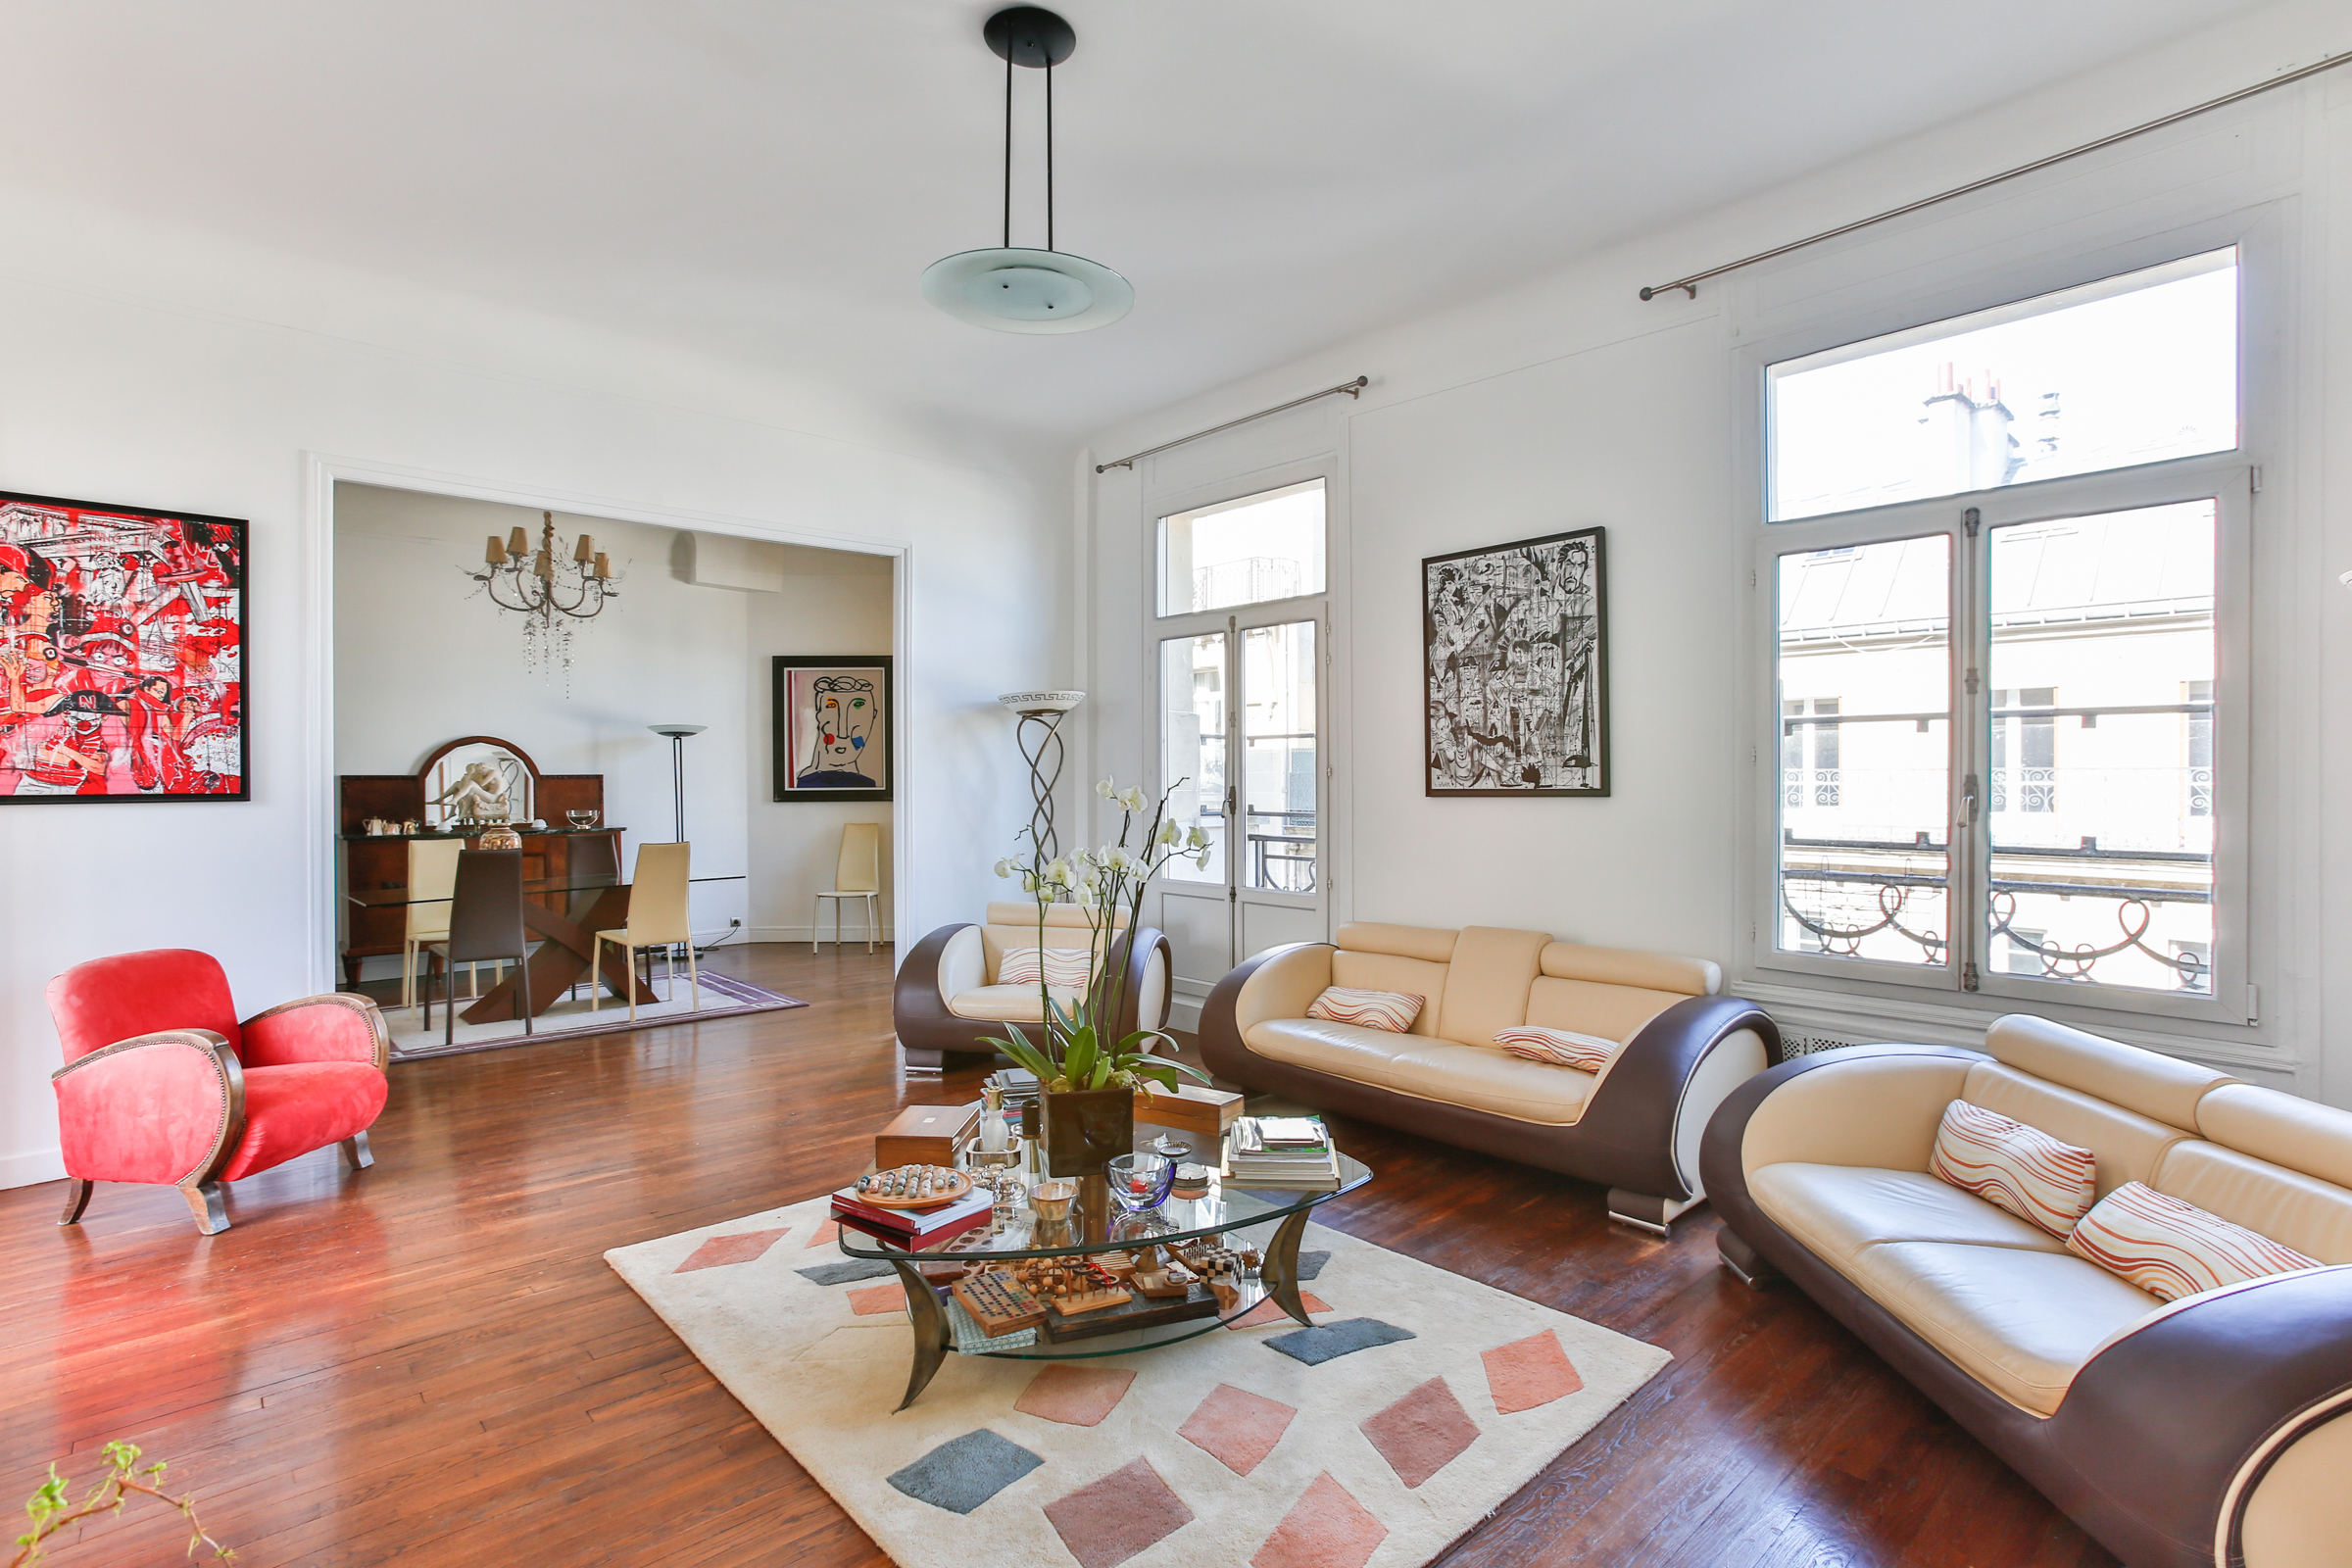 Apartment for Sale at Apartment - Bois Neuilly, Ile-De-France 92200 France